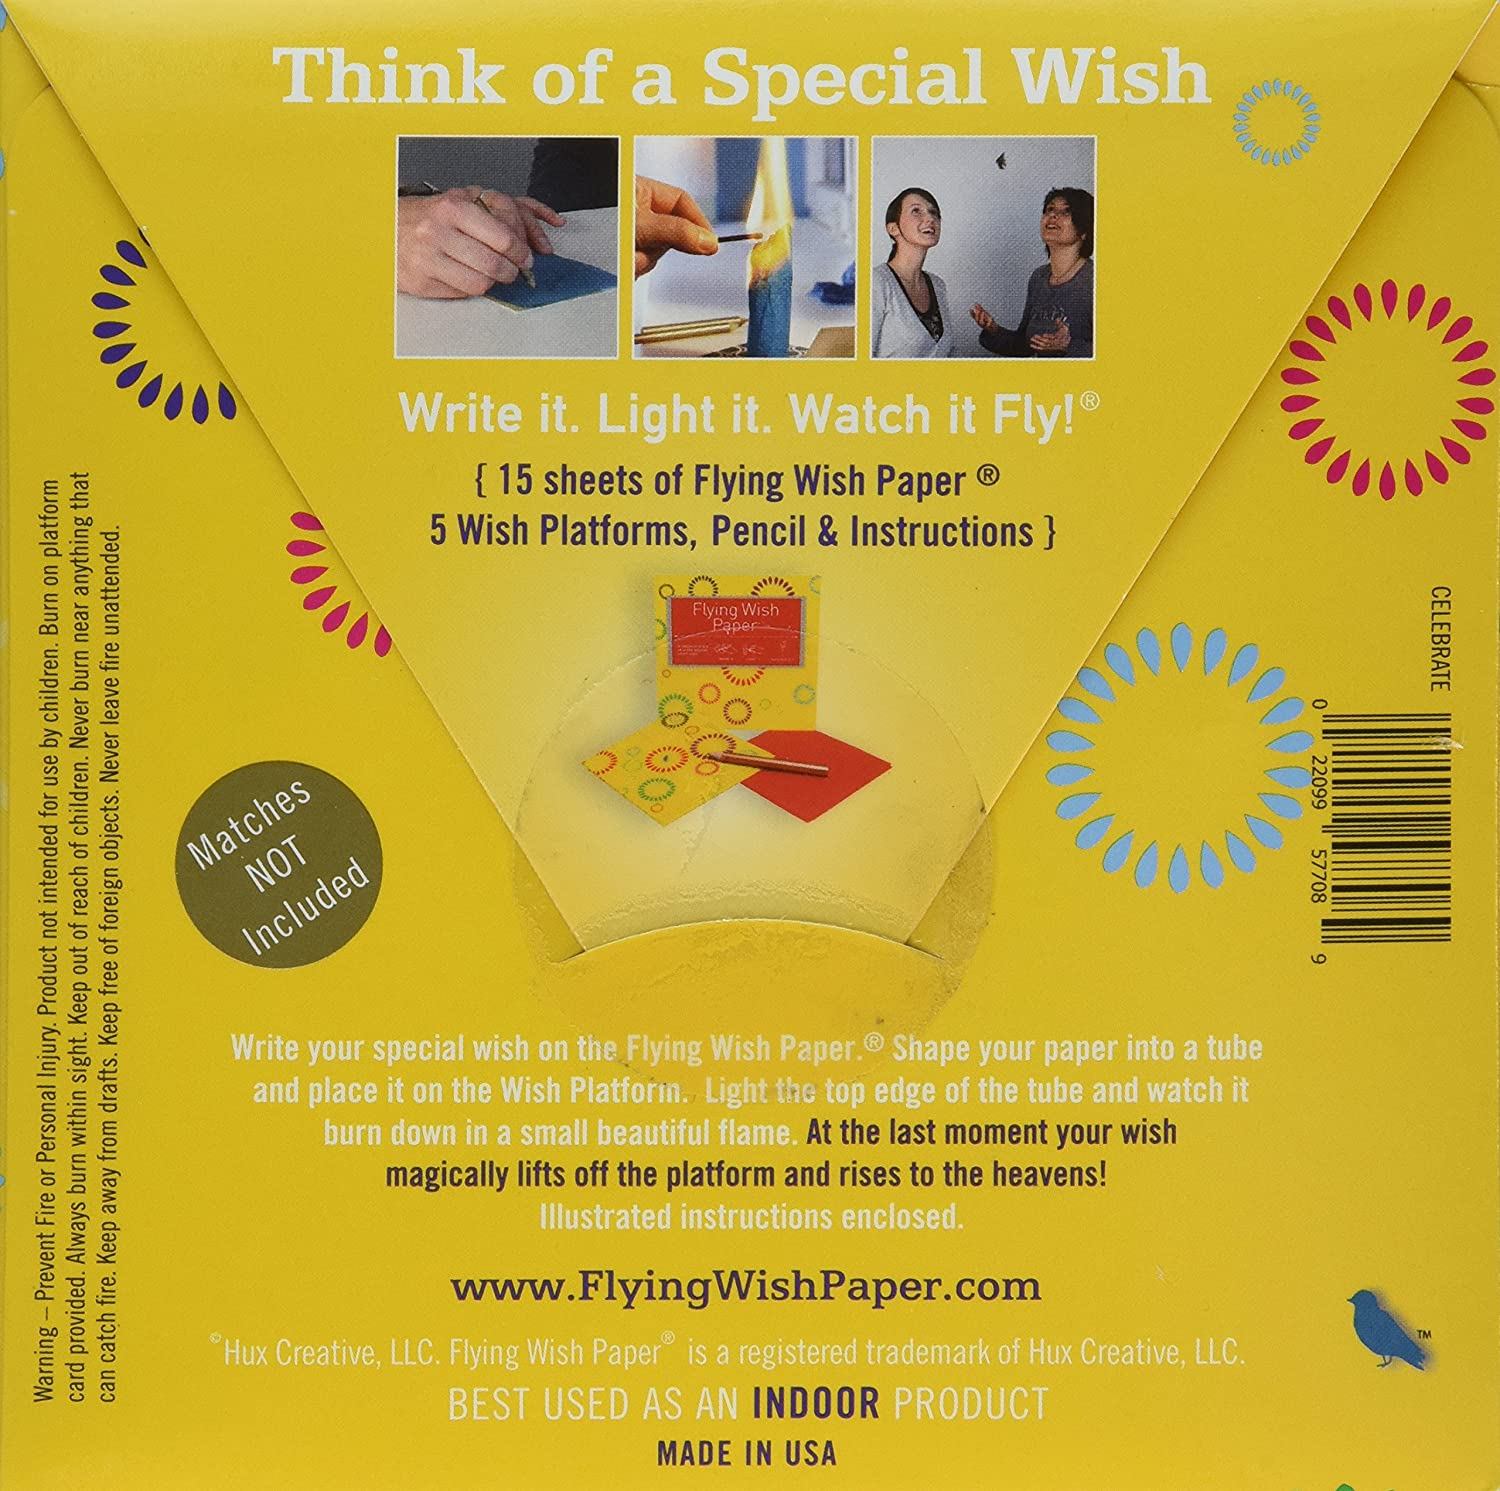 Amazon.com: Flying Wish Paper Celebrate, Small: Home & Kitchen